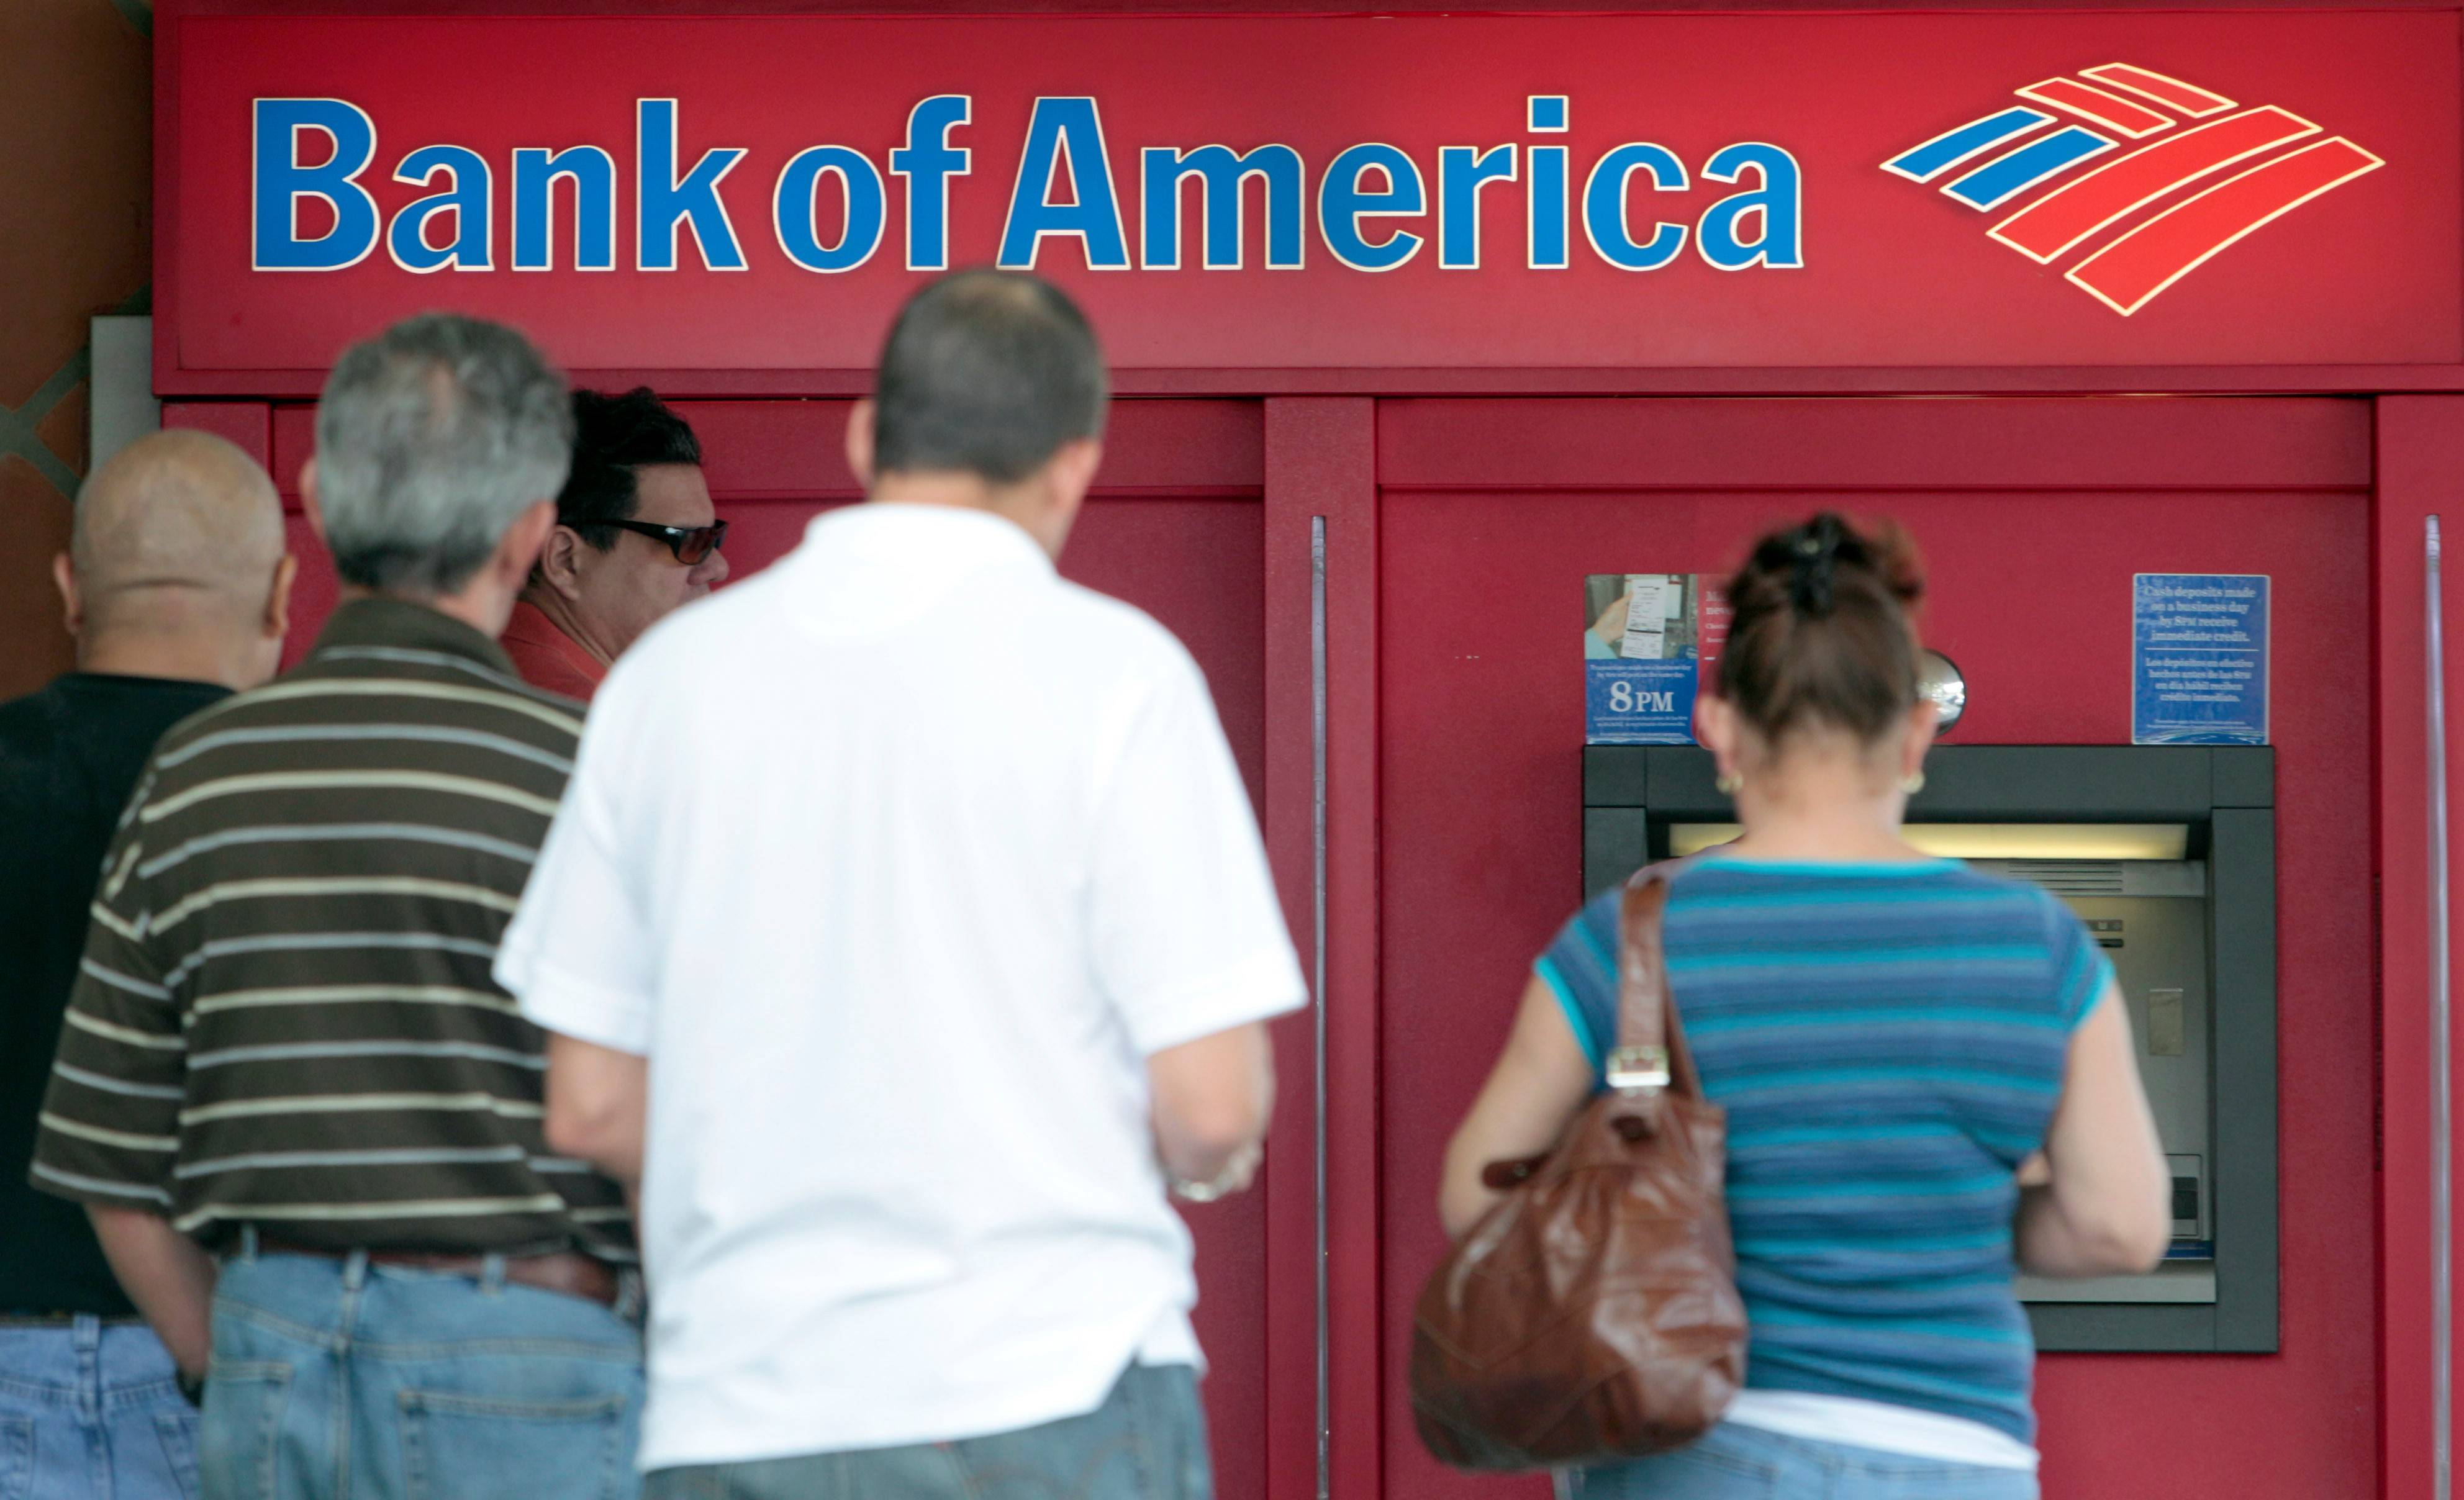 Perhaps the most despised bank fee among consumers is the overdraft fee, an ugly $30 (or so) insult to your wallet. A new report from the Consumer Financial Protection Bureau shows just how much of a bite overdraft fees can take out of some consumers, and provides new prototype disclosure forms it hopes banks and credit unions will adopt.